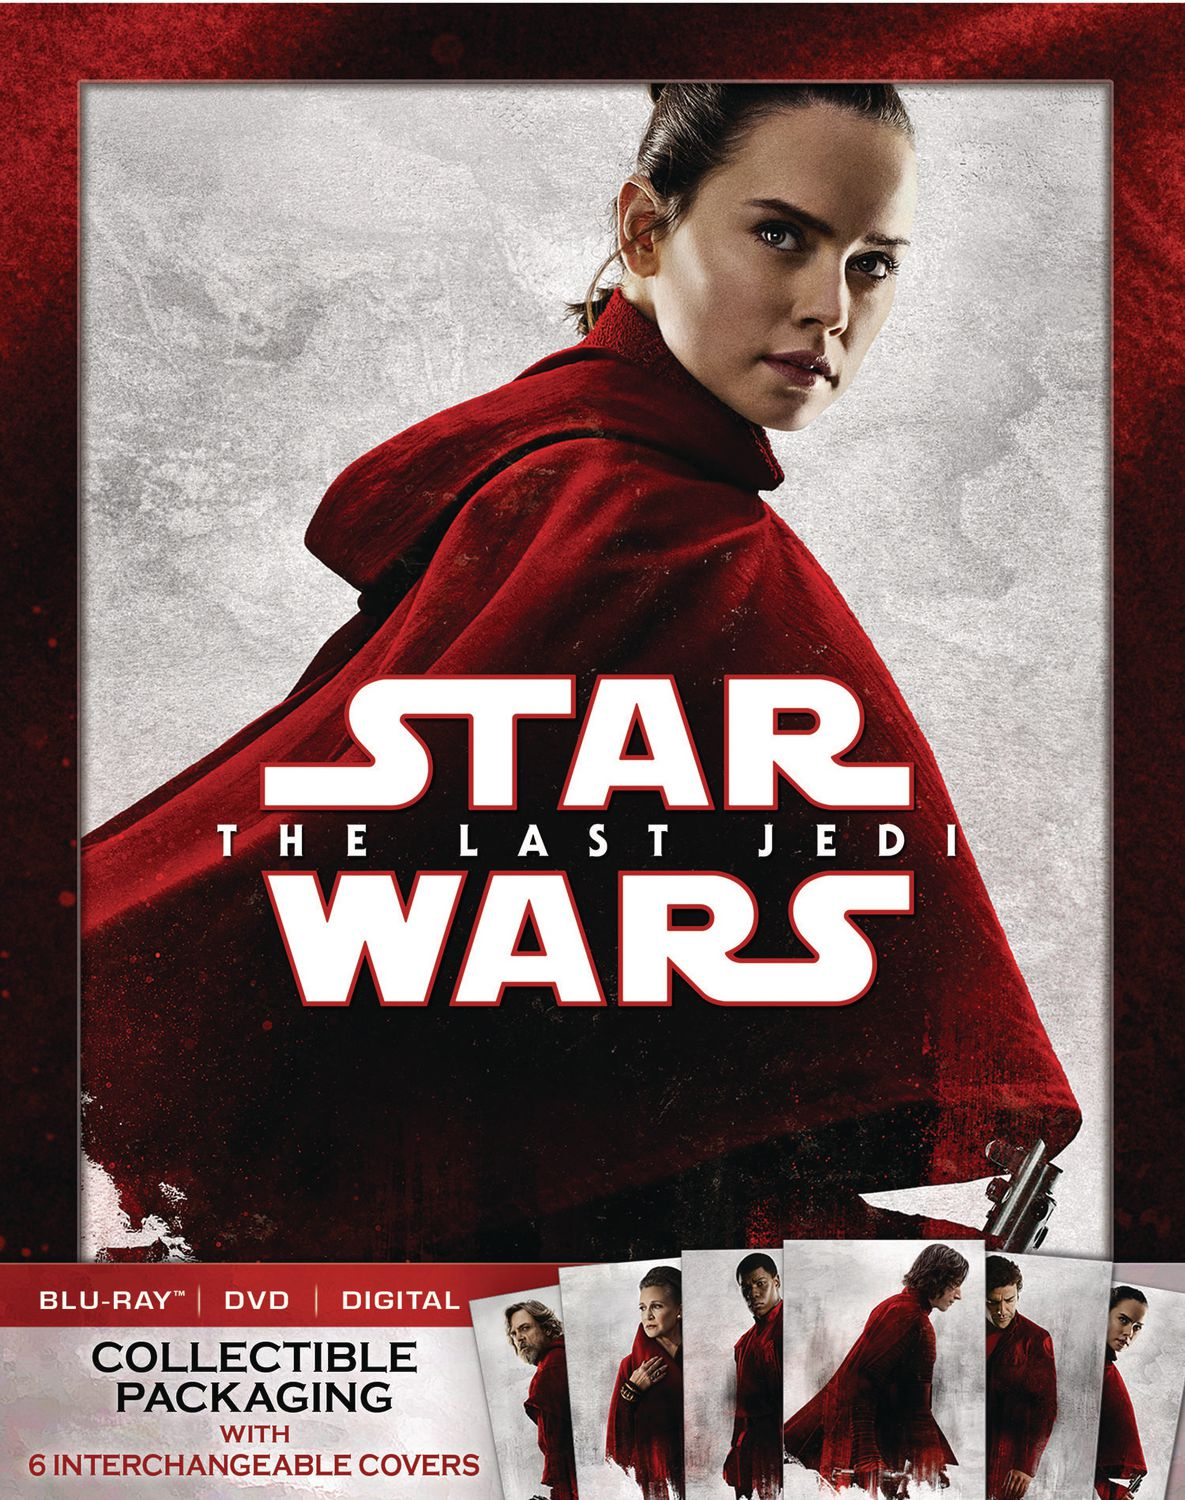 Walmart Exclusive Star Wars: The Last Jedi Blu-ray Cover